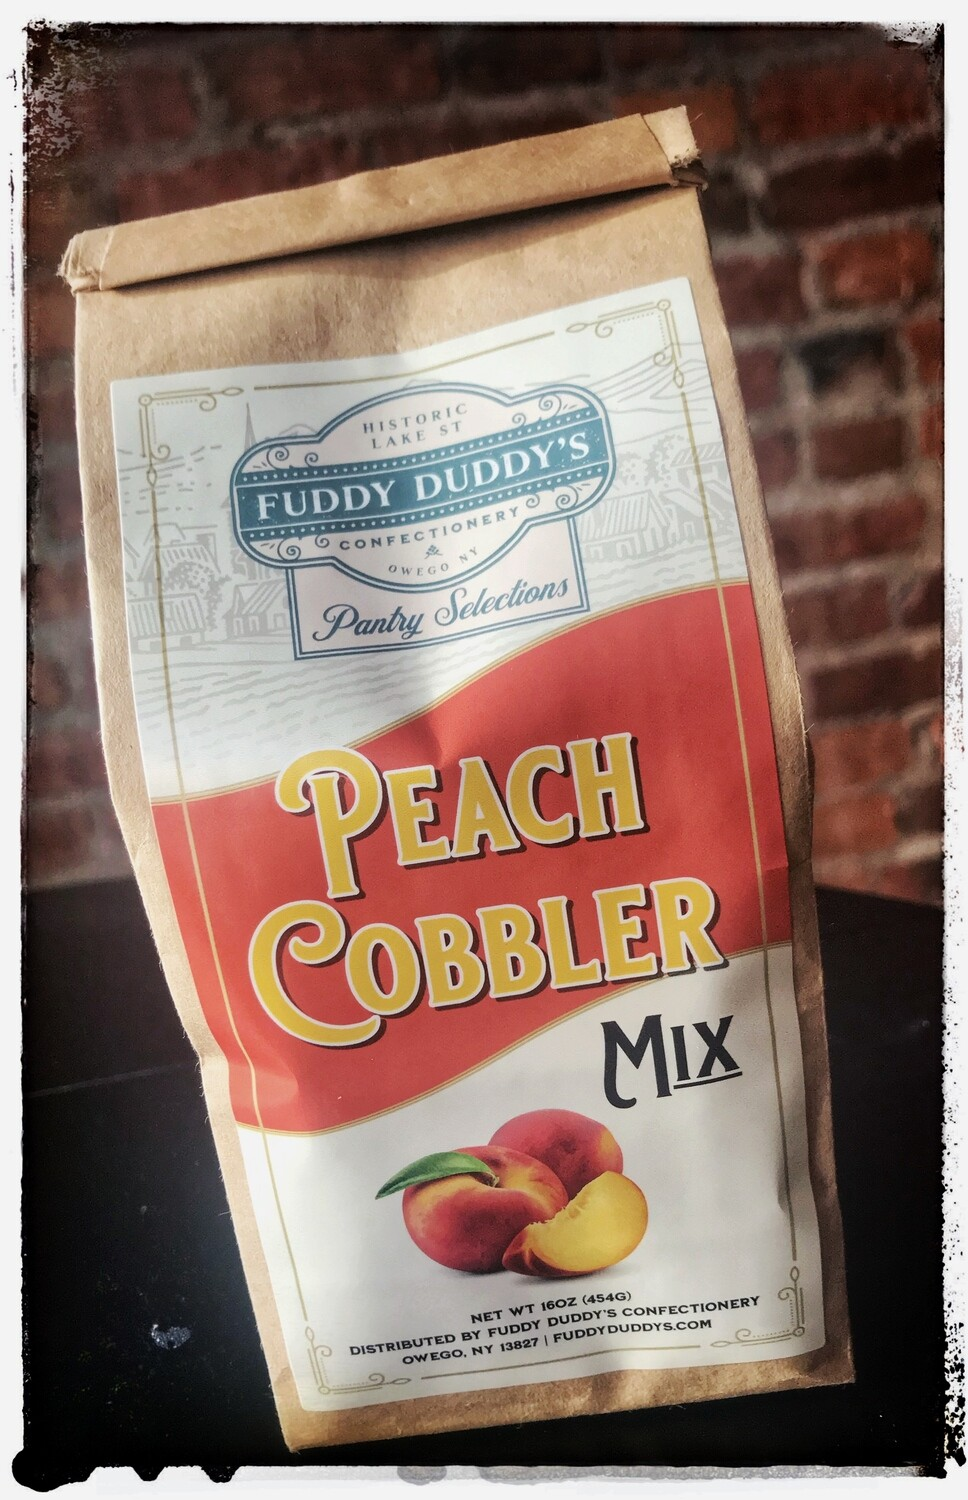 Fuddy Duddy's Peach Cobbler Mix